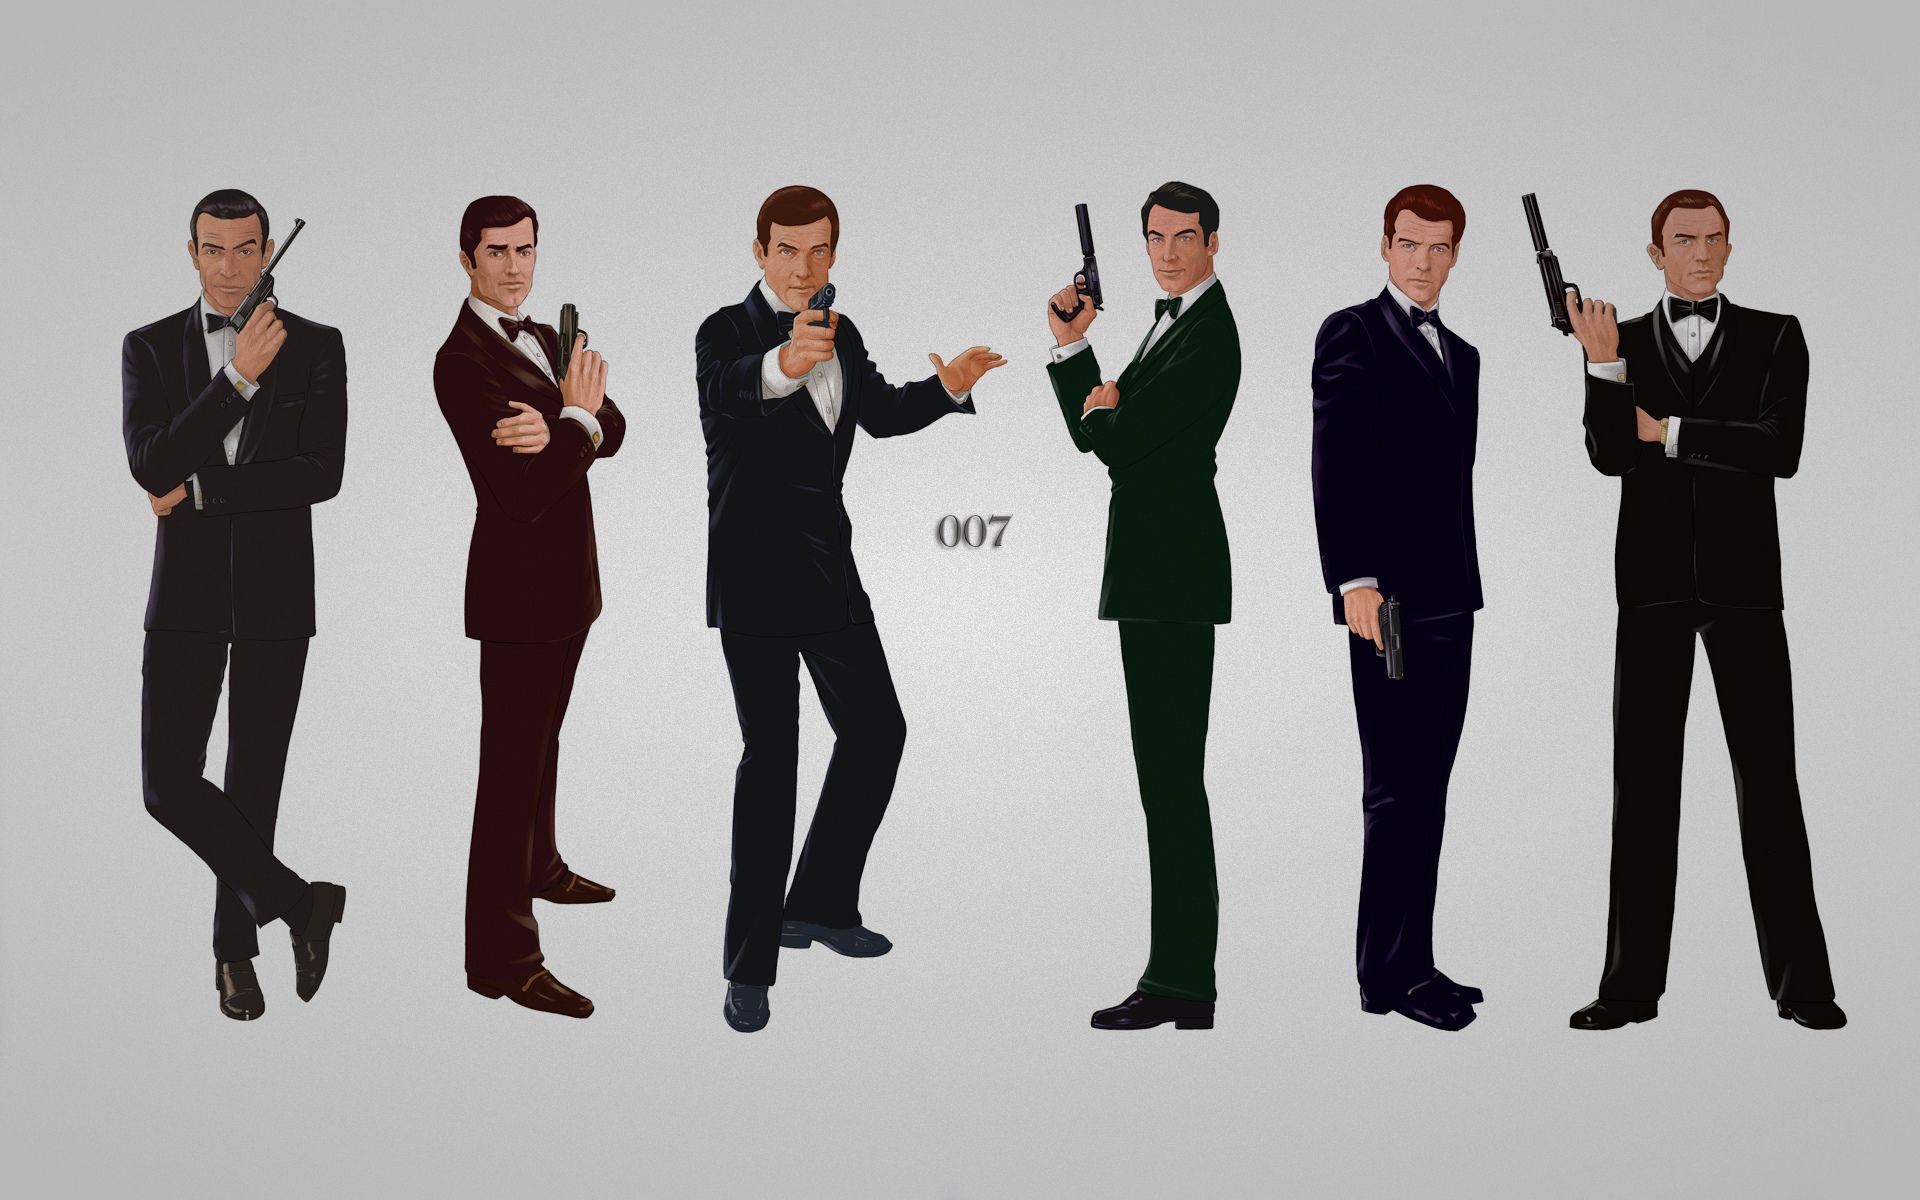 James Bond Wallpaper  Images Wallpapers in 2019 1920x1200